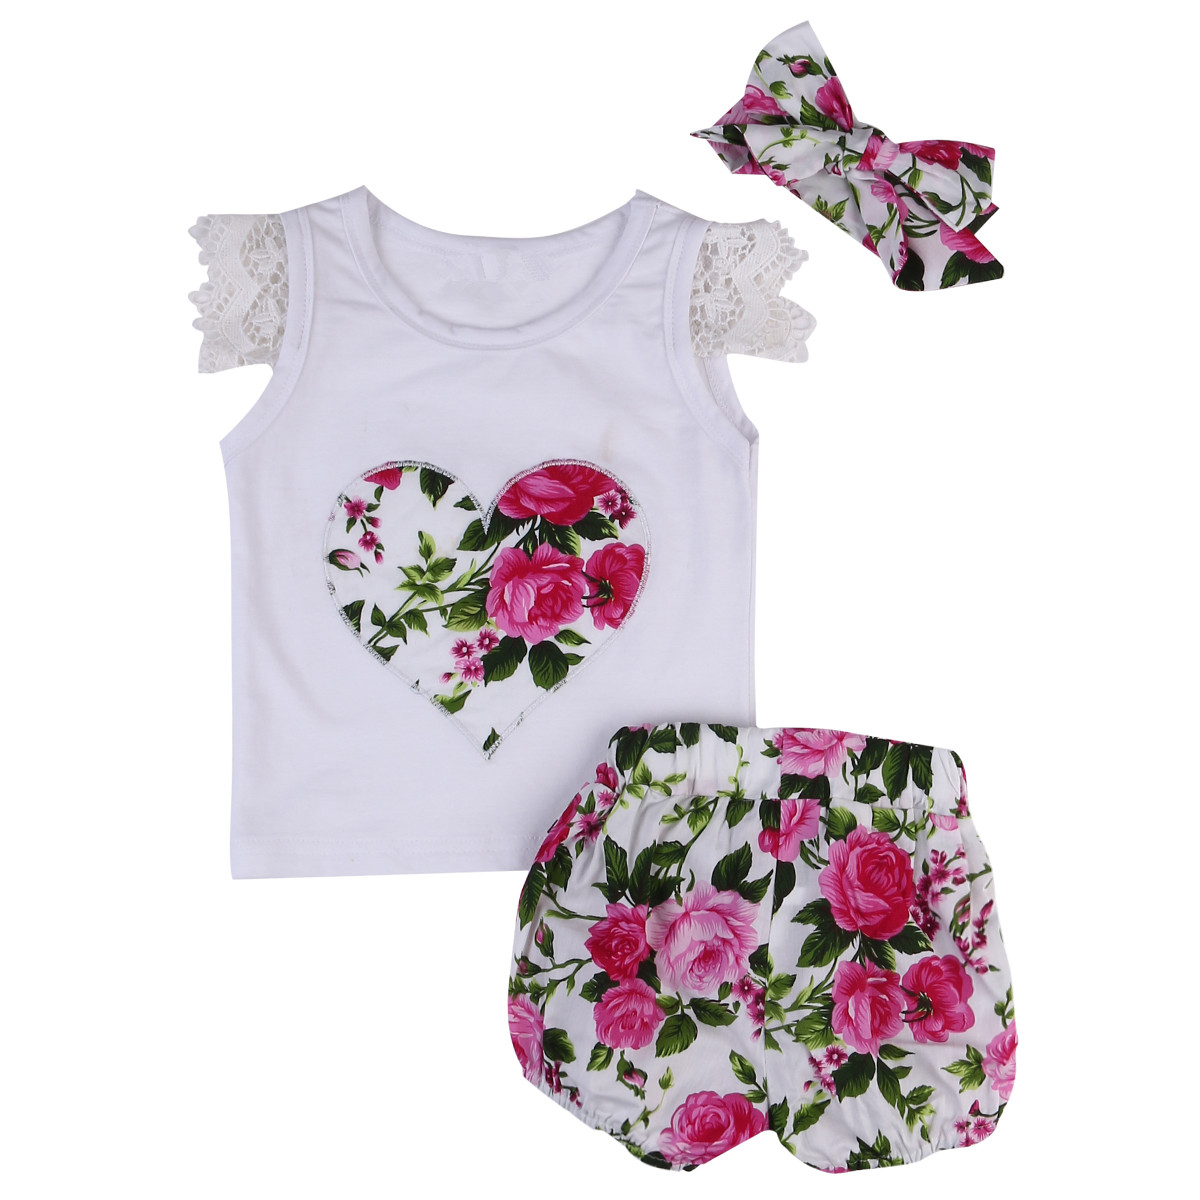 Kids Baby Girl Clothes Lace Tops T-shirt+Floral Shorts Pants+Headband 3Pcs Cotton Sets Kids Girls Cute Summer Outfits